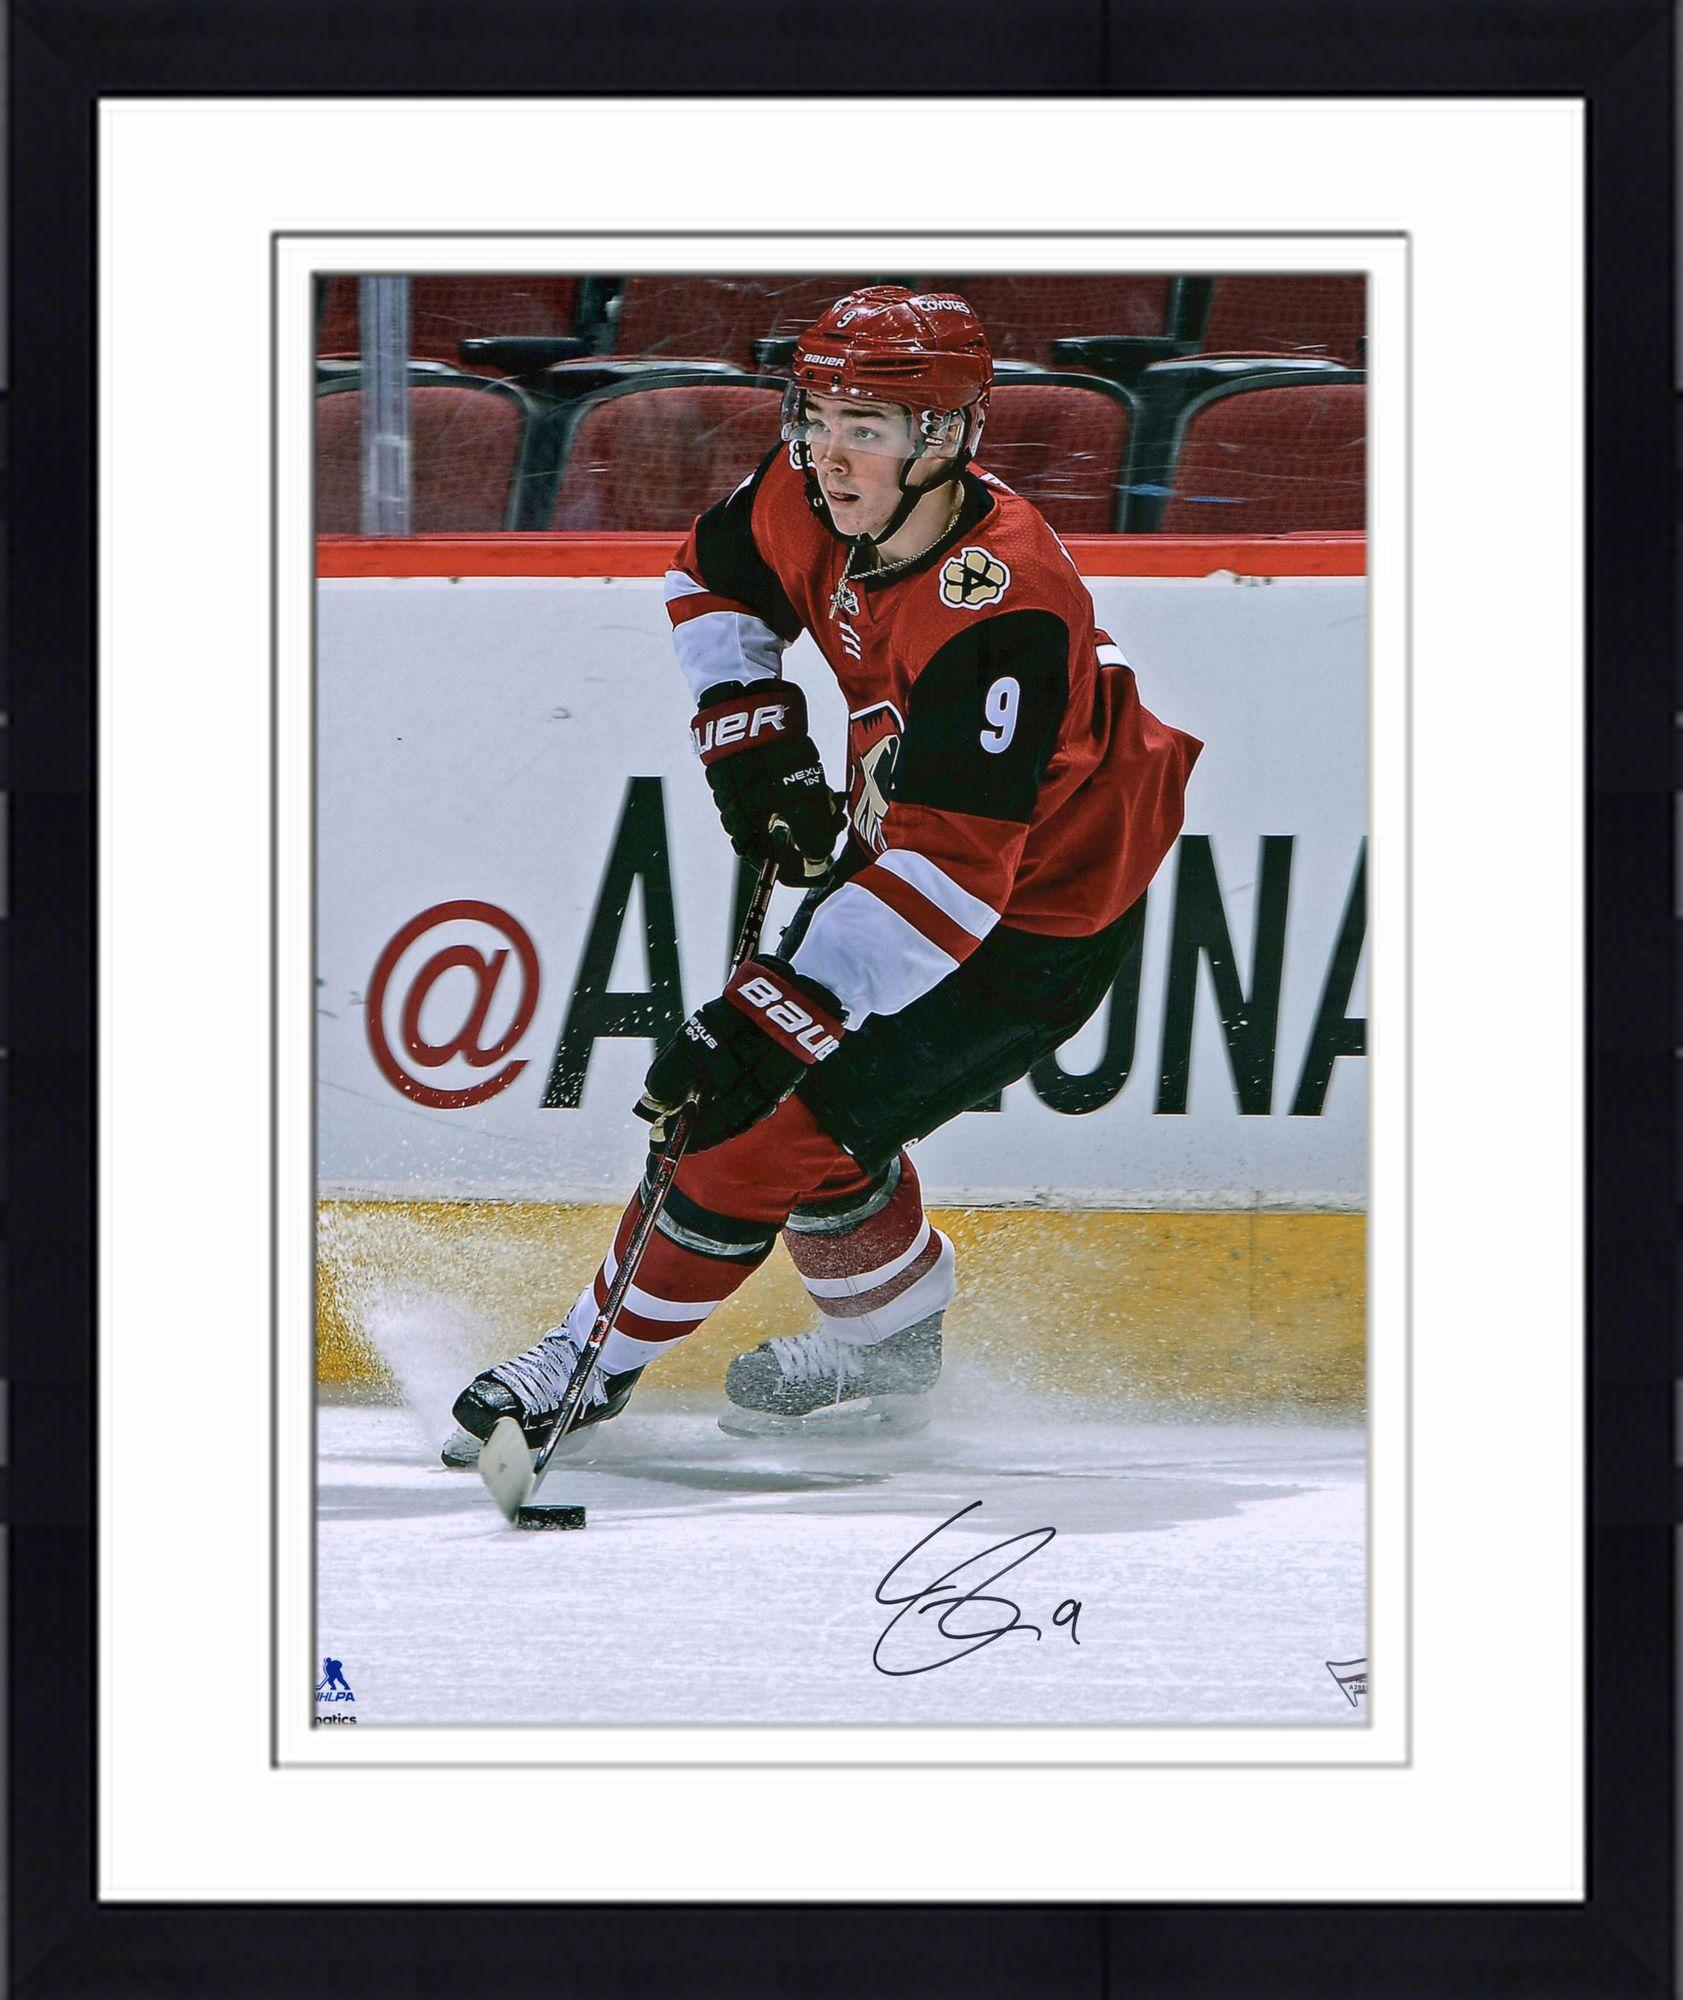 """Framed Clayton Keller Arizona Coyotes Autographed 16"""" x 20"""" Red Jersey Skating Photograph Fanatics Authentic... by Fanatics Authentic"""